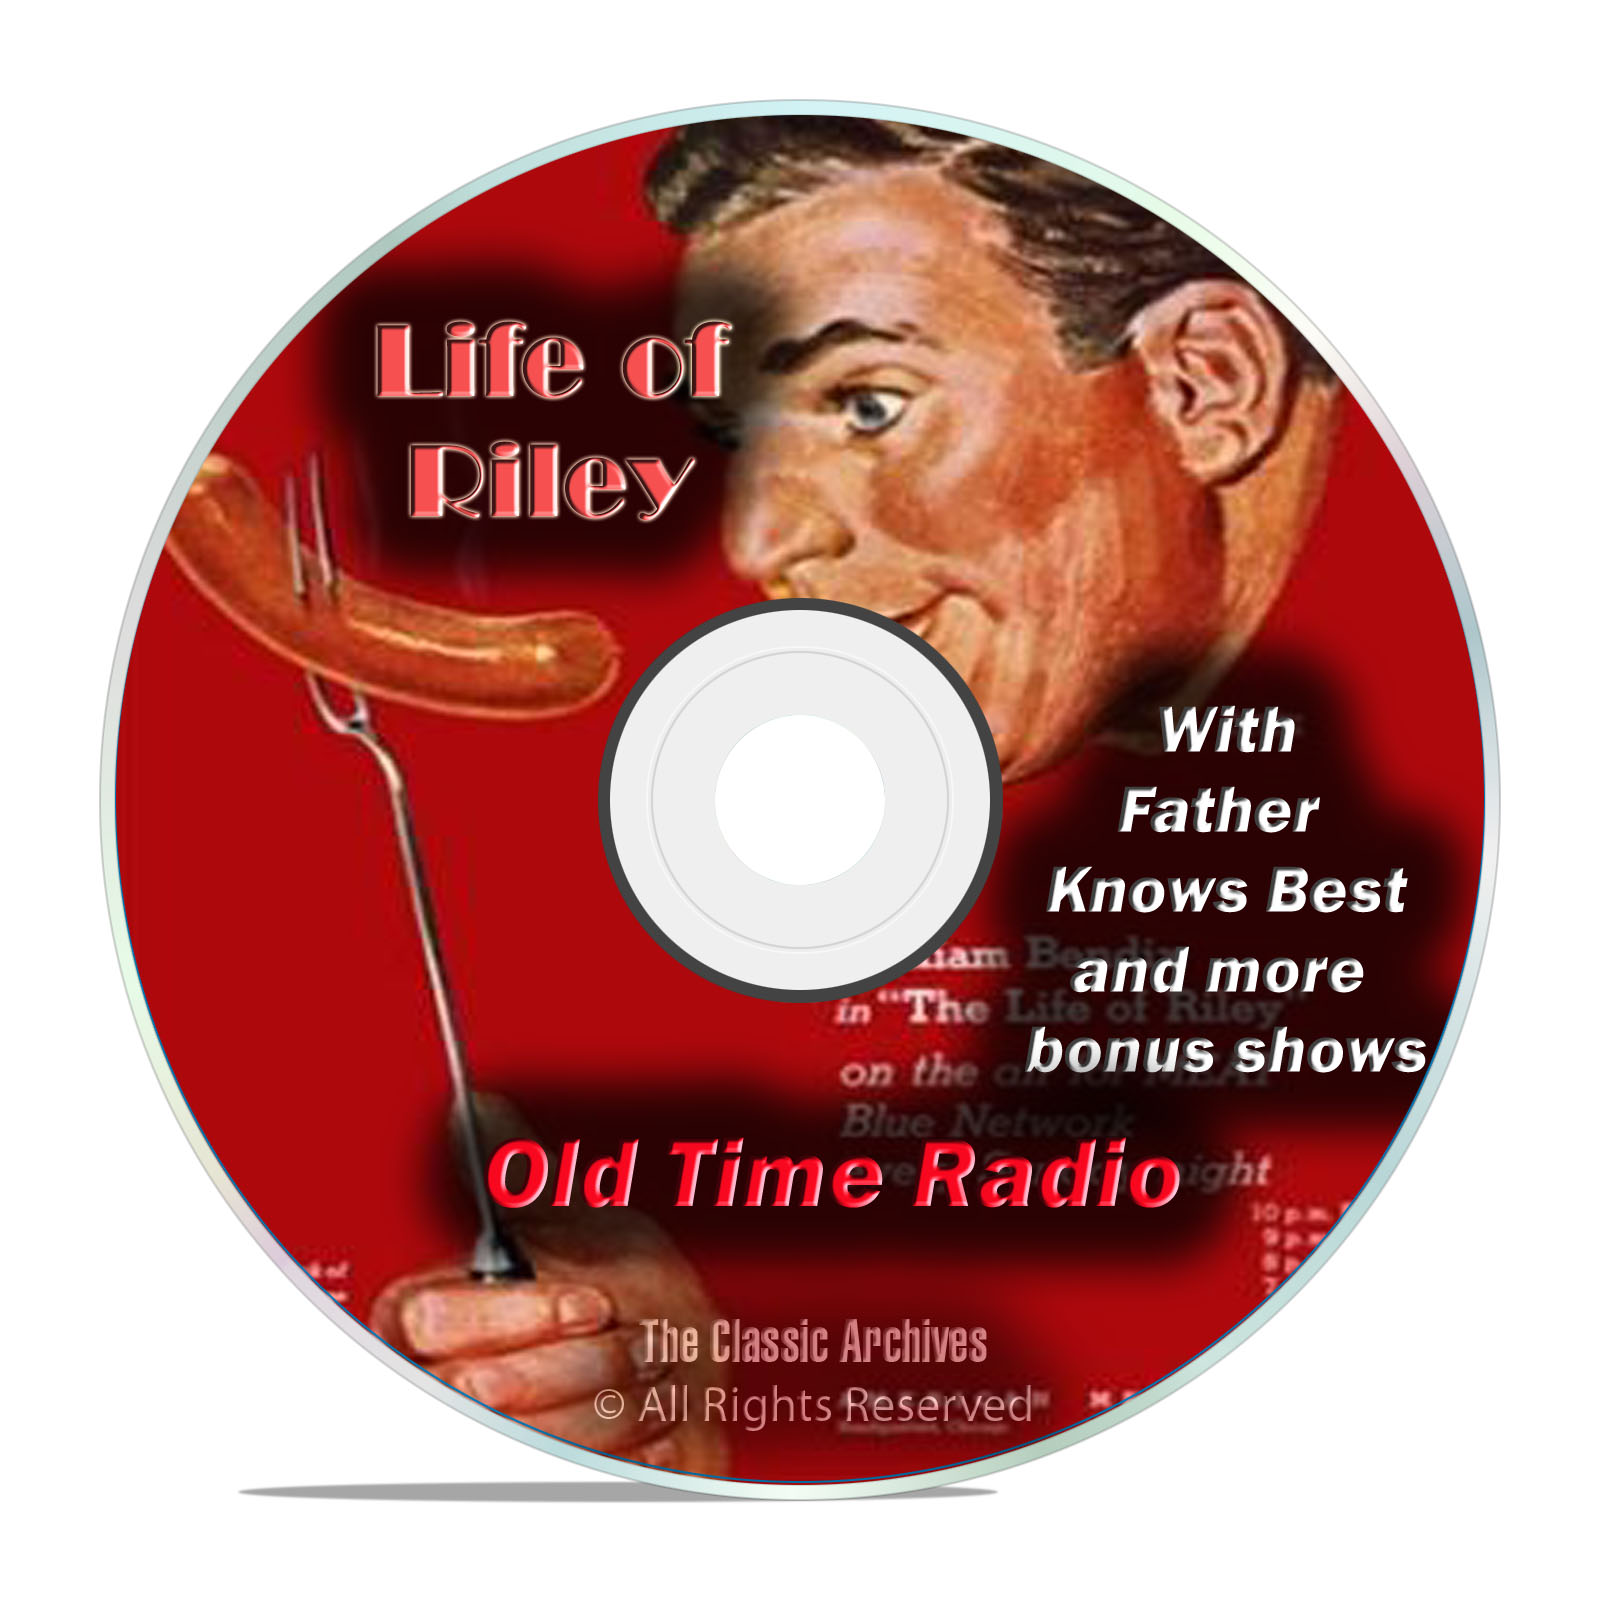 The Life of Riley, Father Knows Best, 607 EPISODES, Old Time Radio, DVD